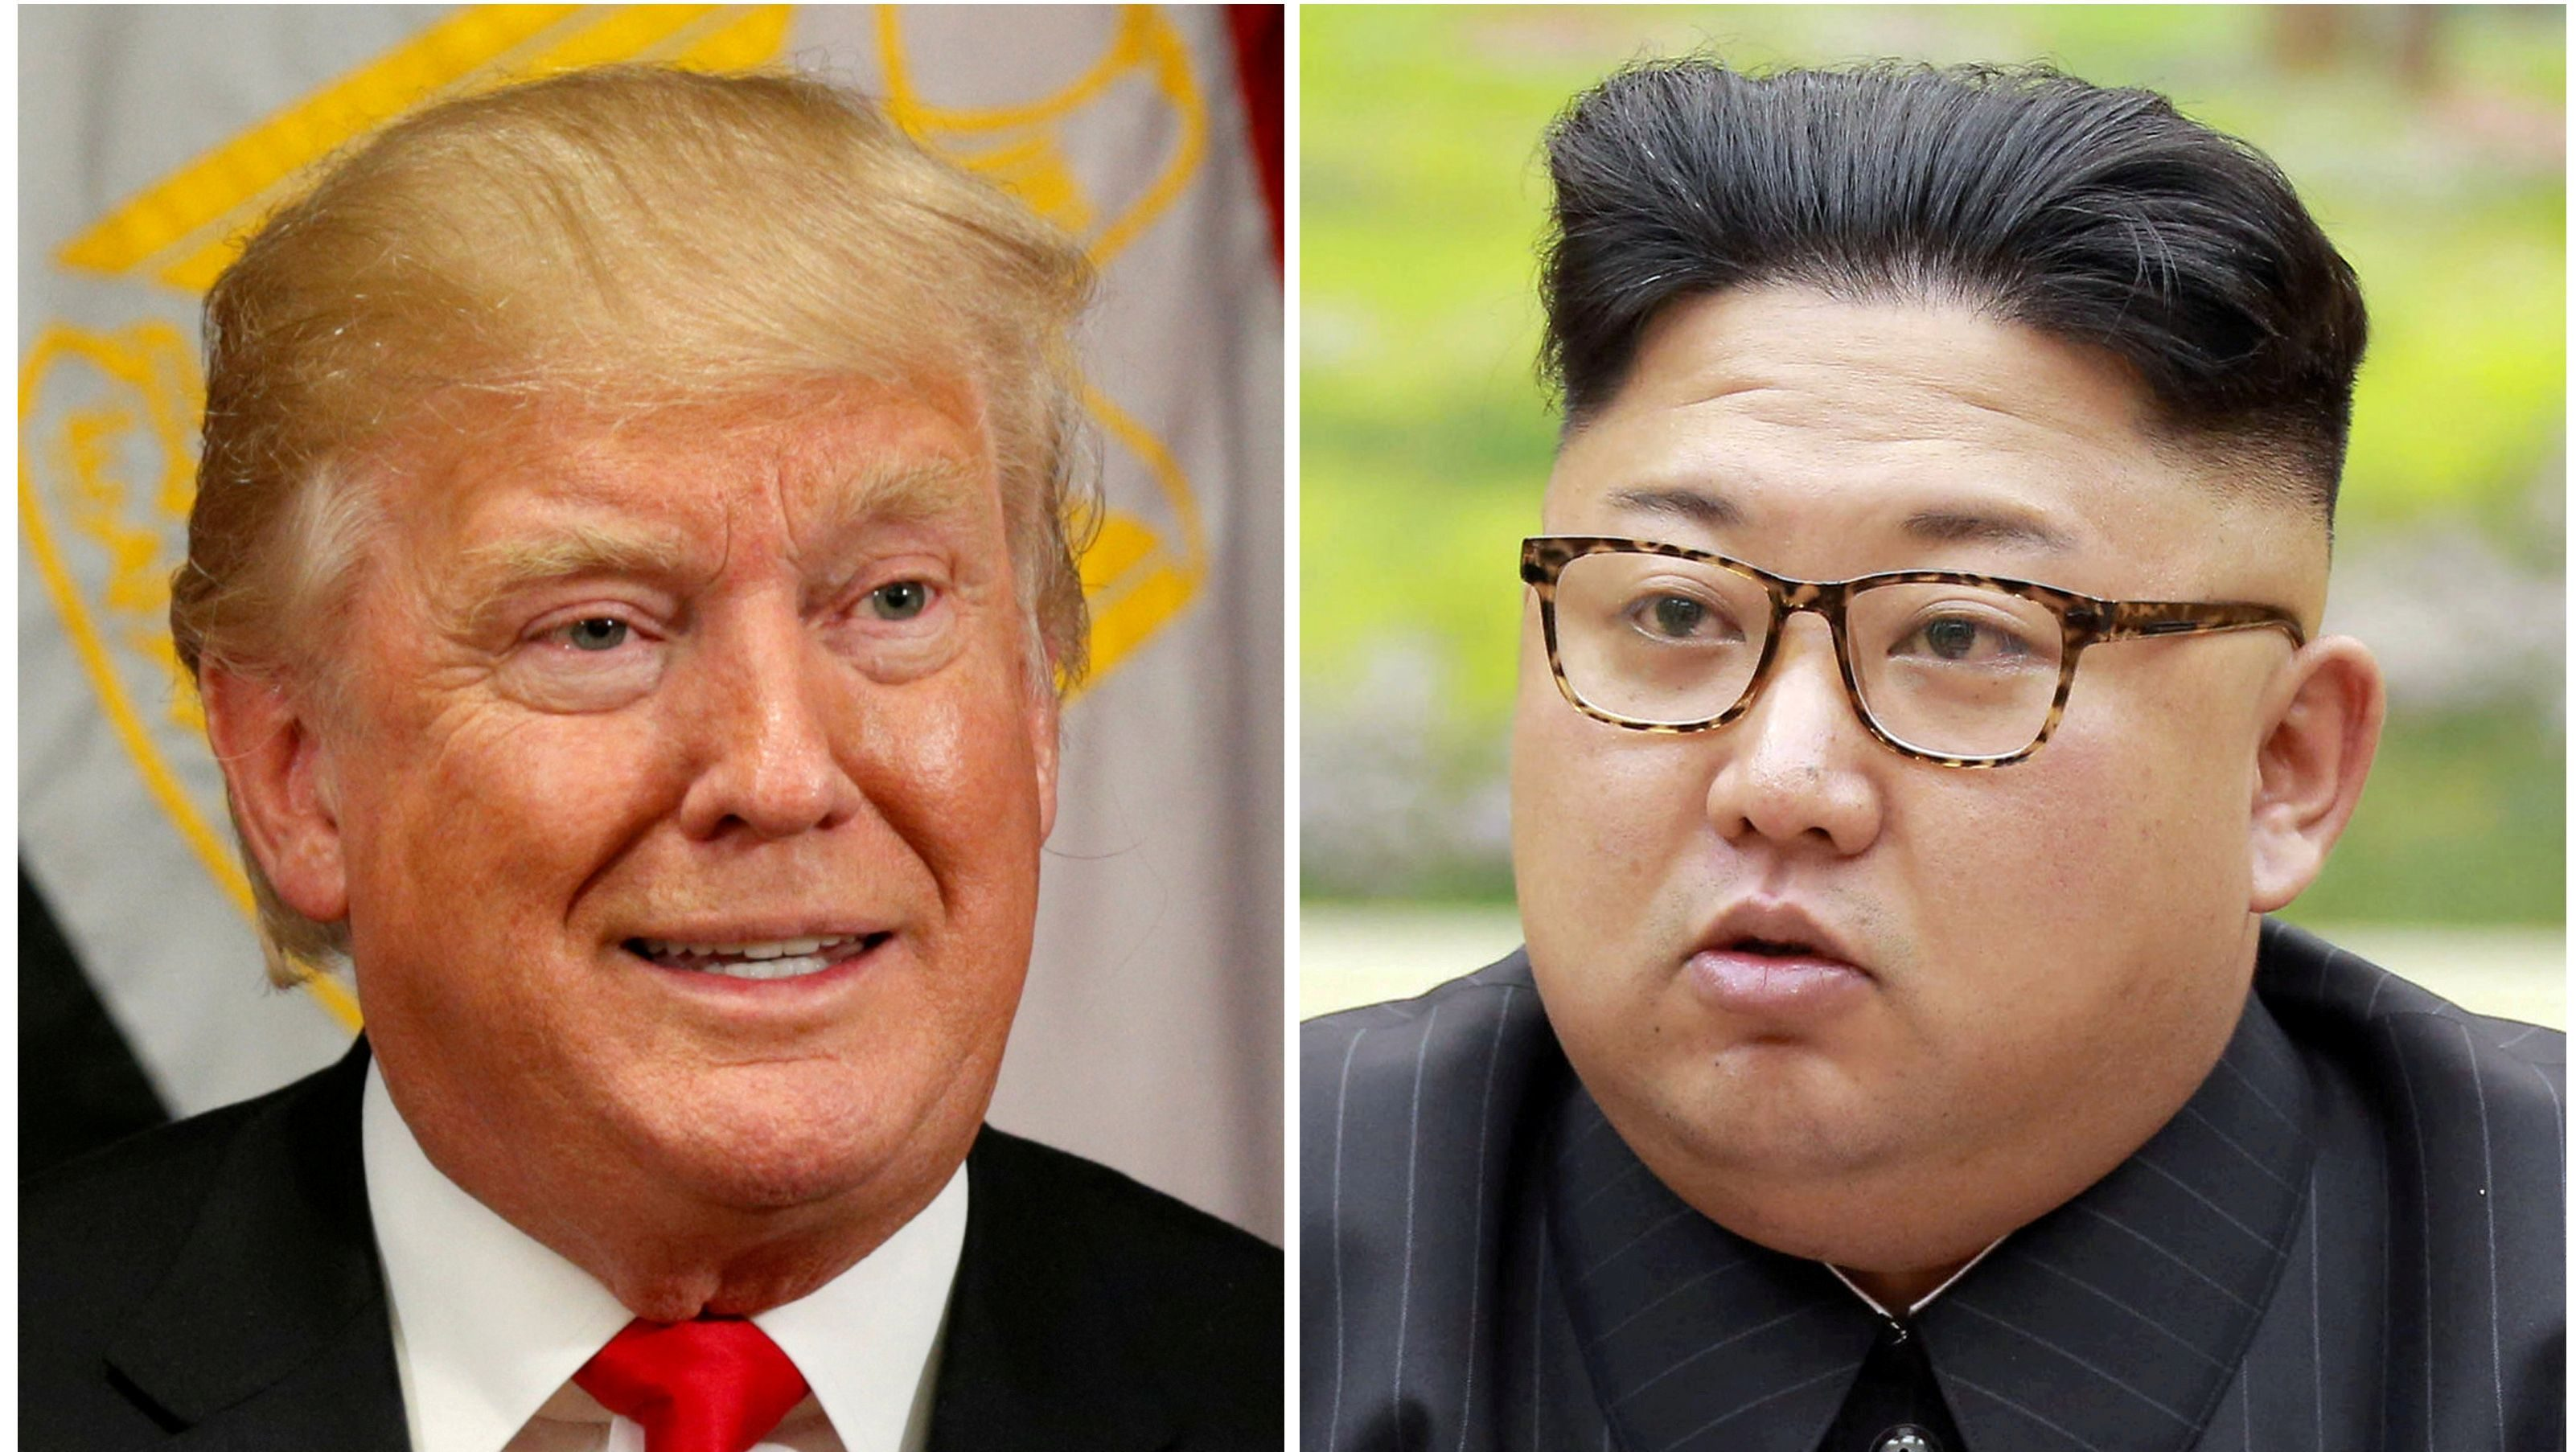 A combination photo shows U.S. President Donald Trump in New York, U.S. September 21, 2017 and North Korean leader Kim Jong Un in this undated photo released by North Korea's Korean Central News Agency (KCNA) in Pyongyang, September 4, 2017.